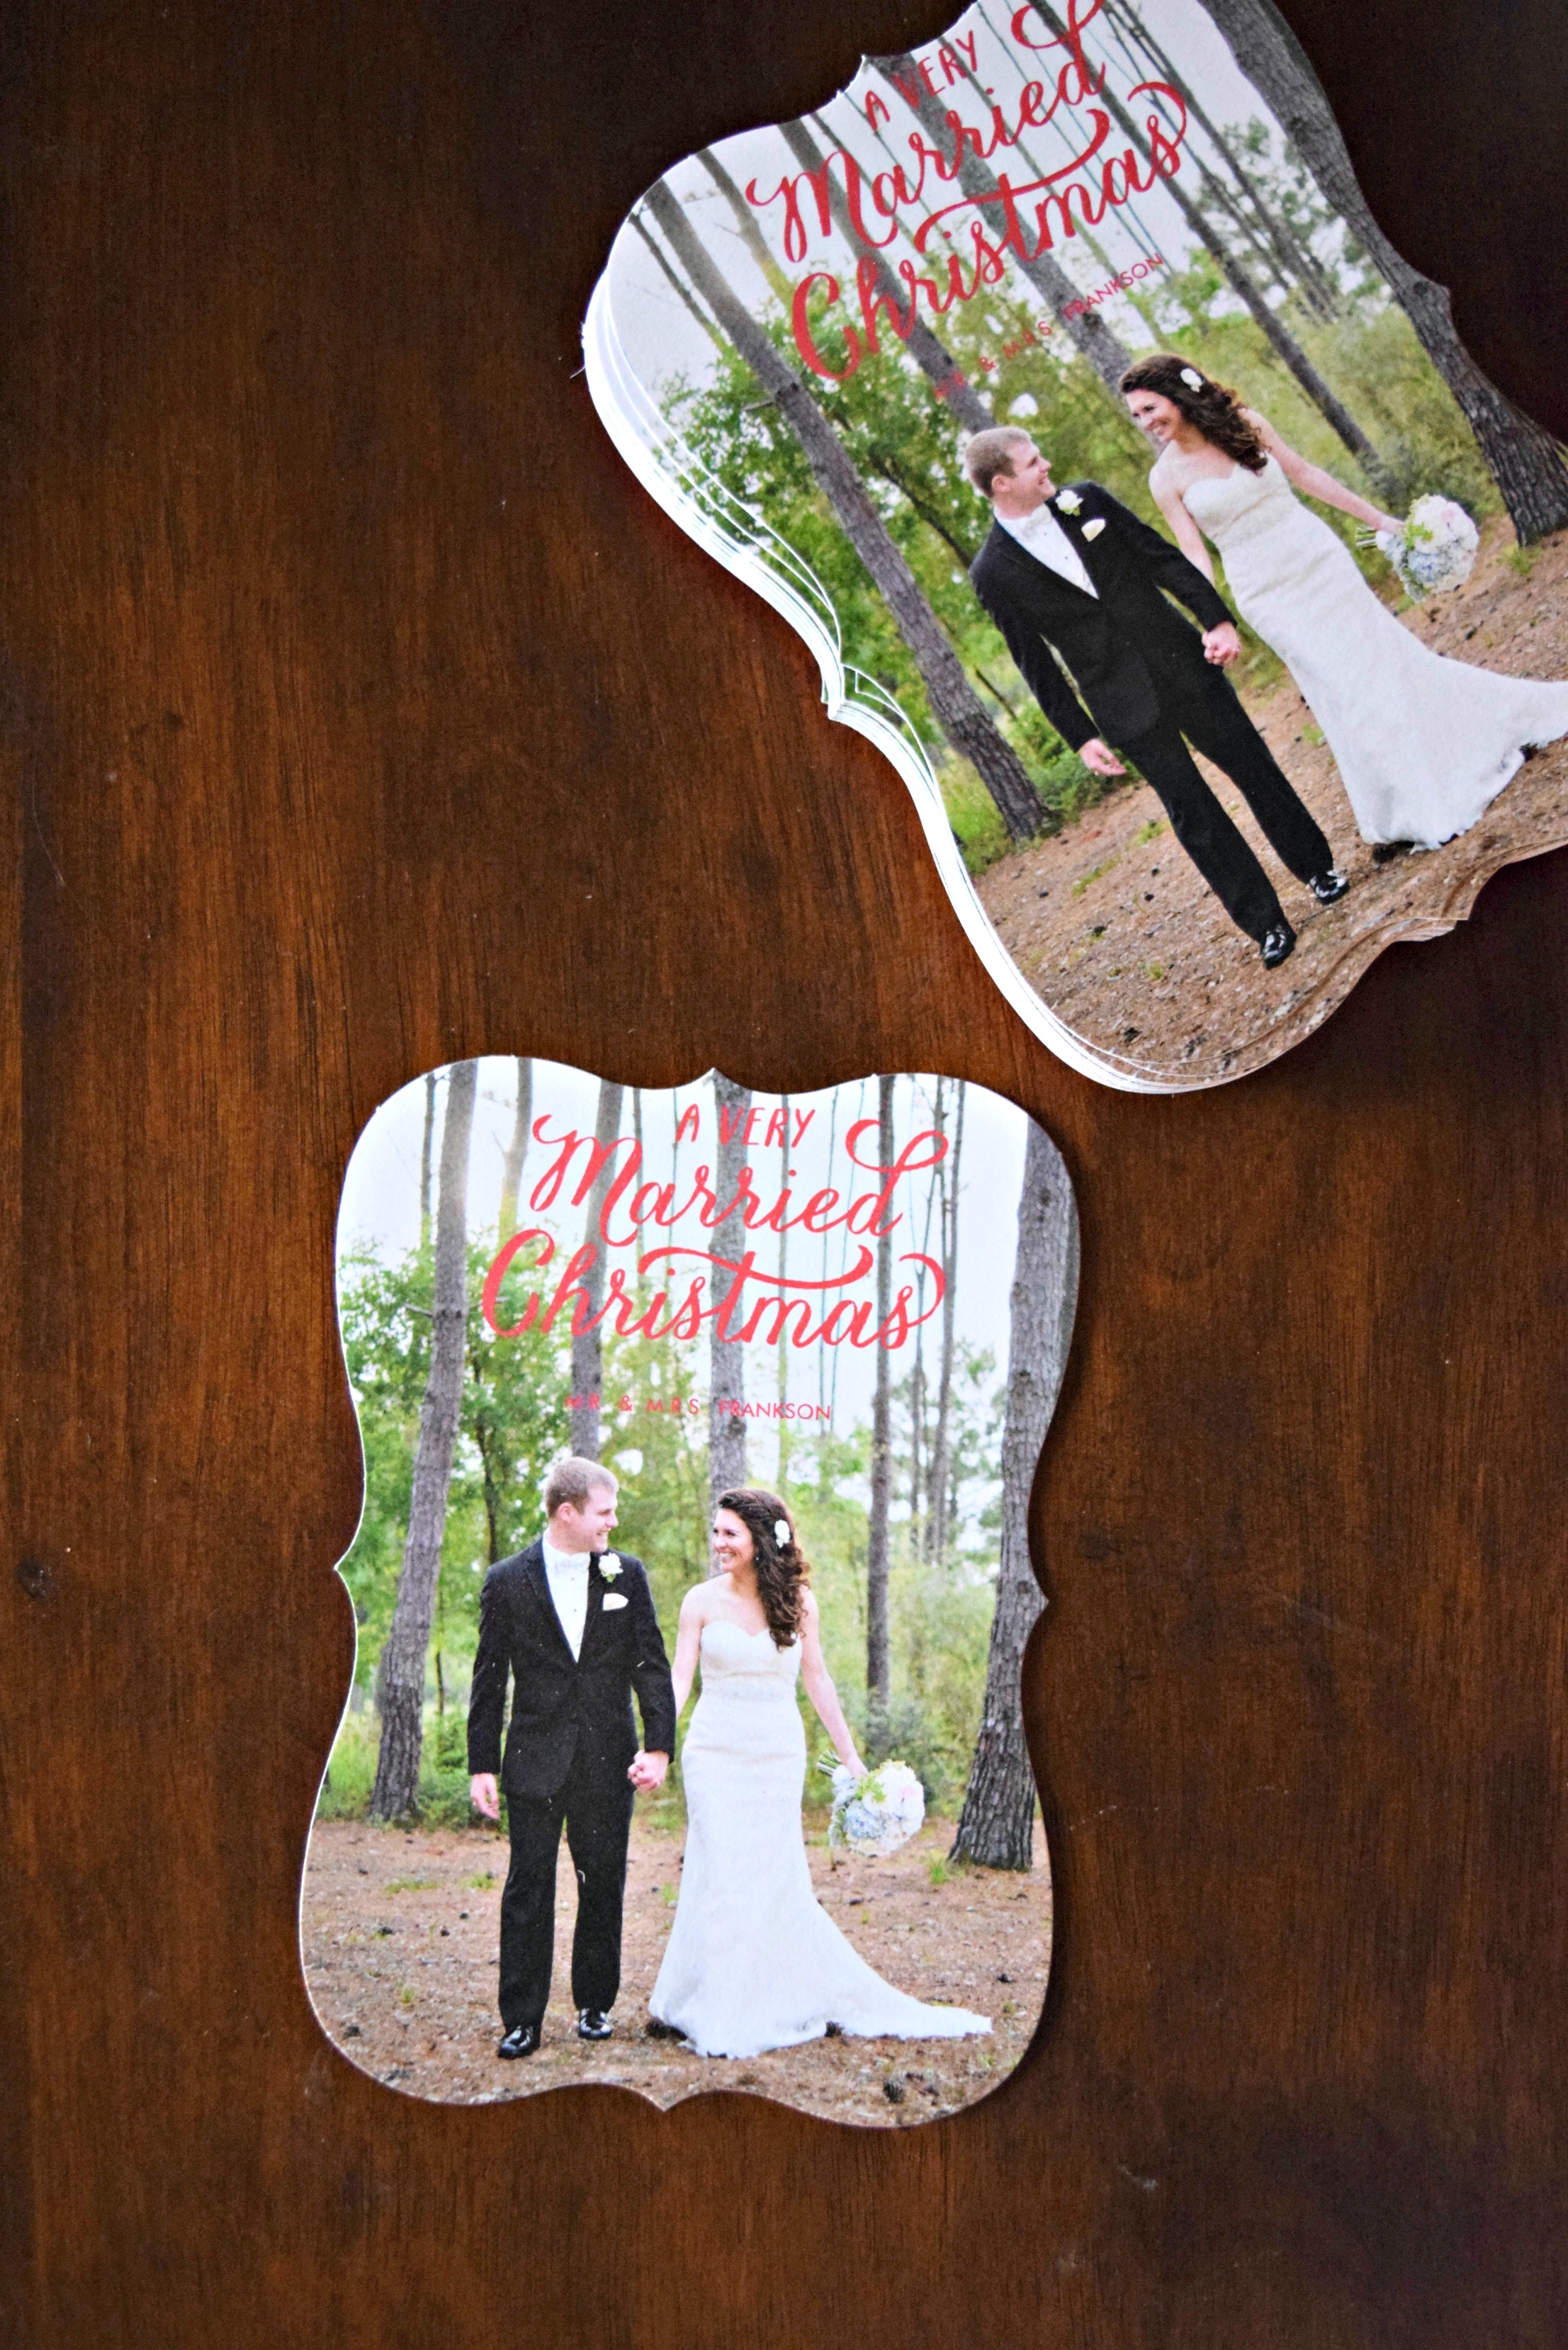 Christmas Cards for Newlyweds - A Simplified Life